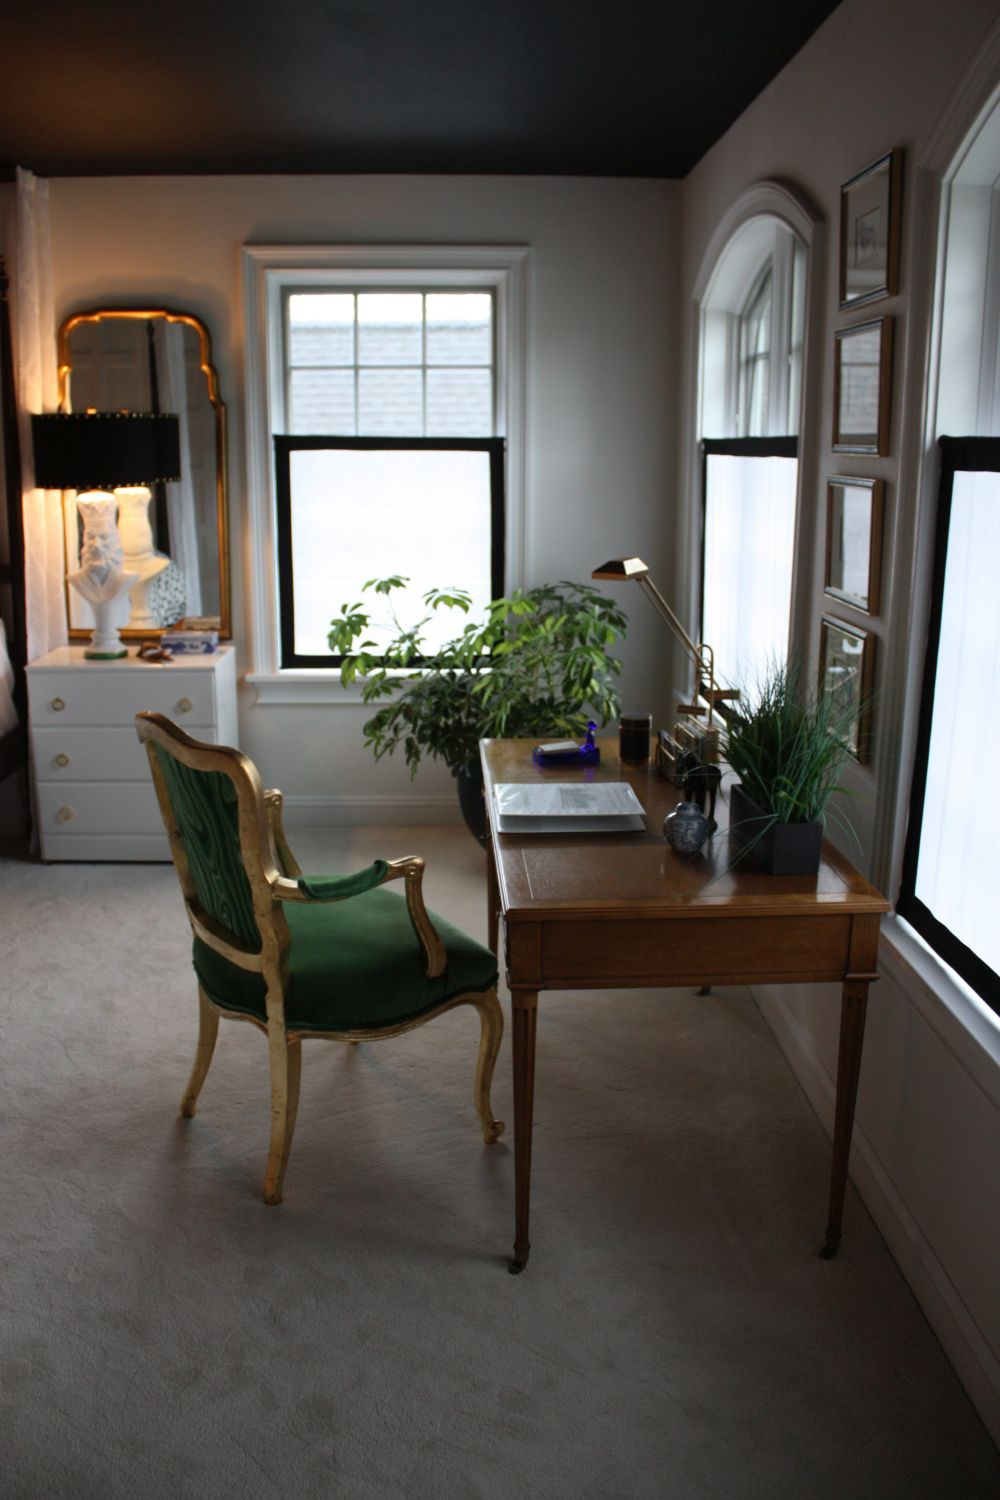 A desk or seating area in the bedroom is very handy and relaxing.